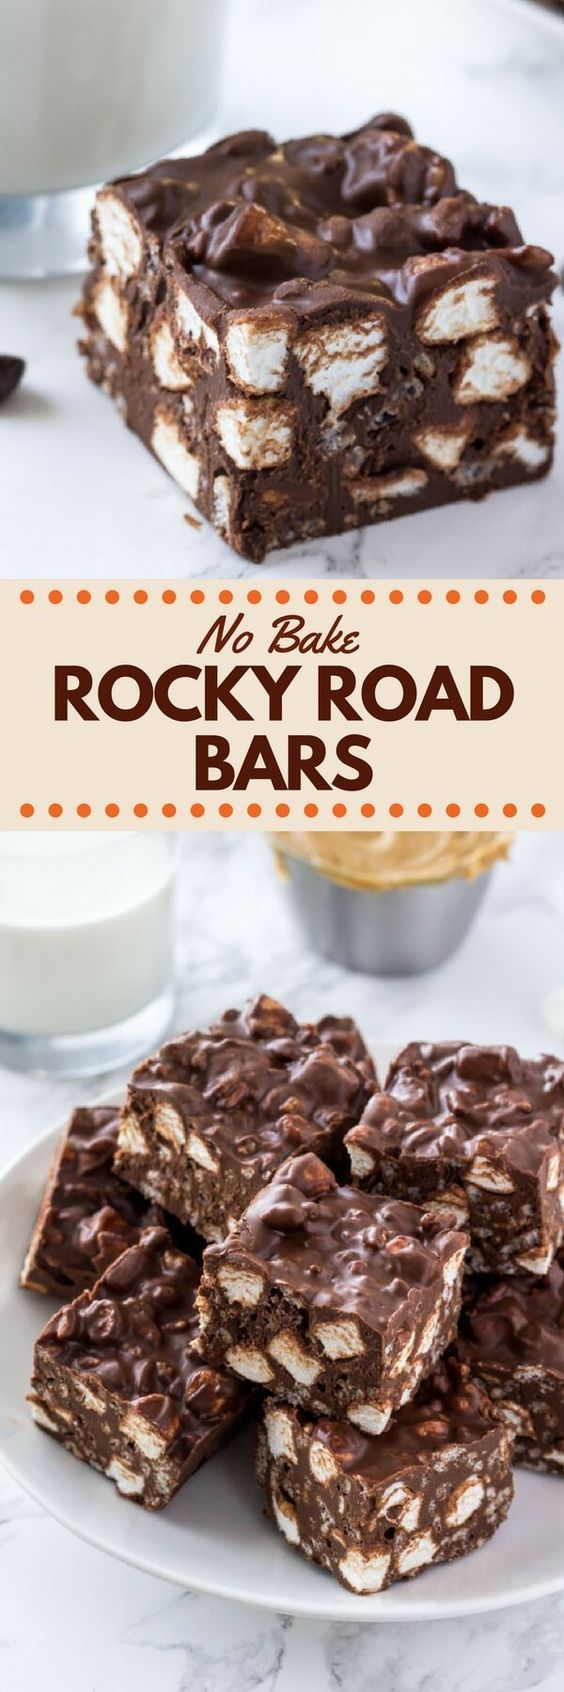 These No Bake Rocky Road Squares are the perfect easy recipe if you love peanut butter and chocolate. With only 5 ingredients - they're crispy, crunchy & gooey thanks to using Rice Krispie cereal and mini marshmallows. #nobake #rockyroadsquares #peanutbutterchocolate #rockyroad